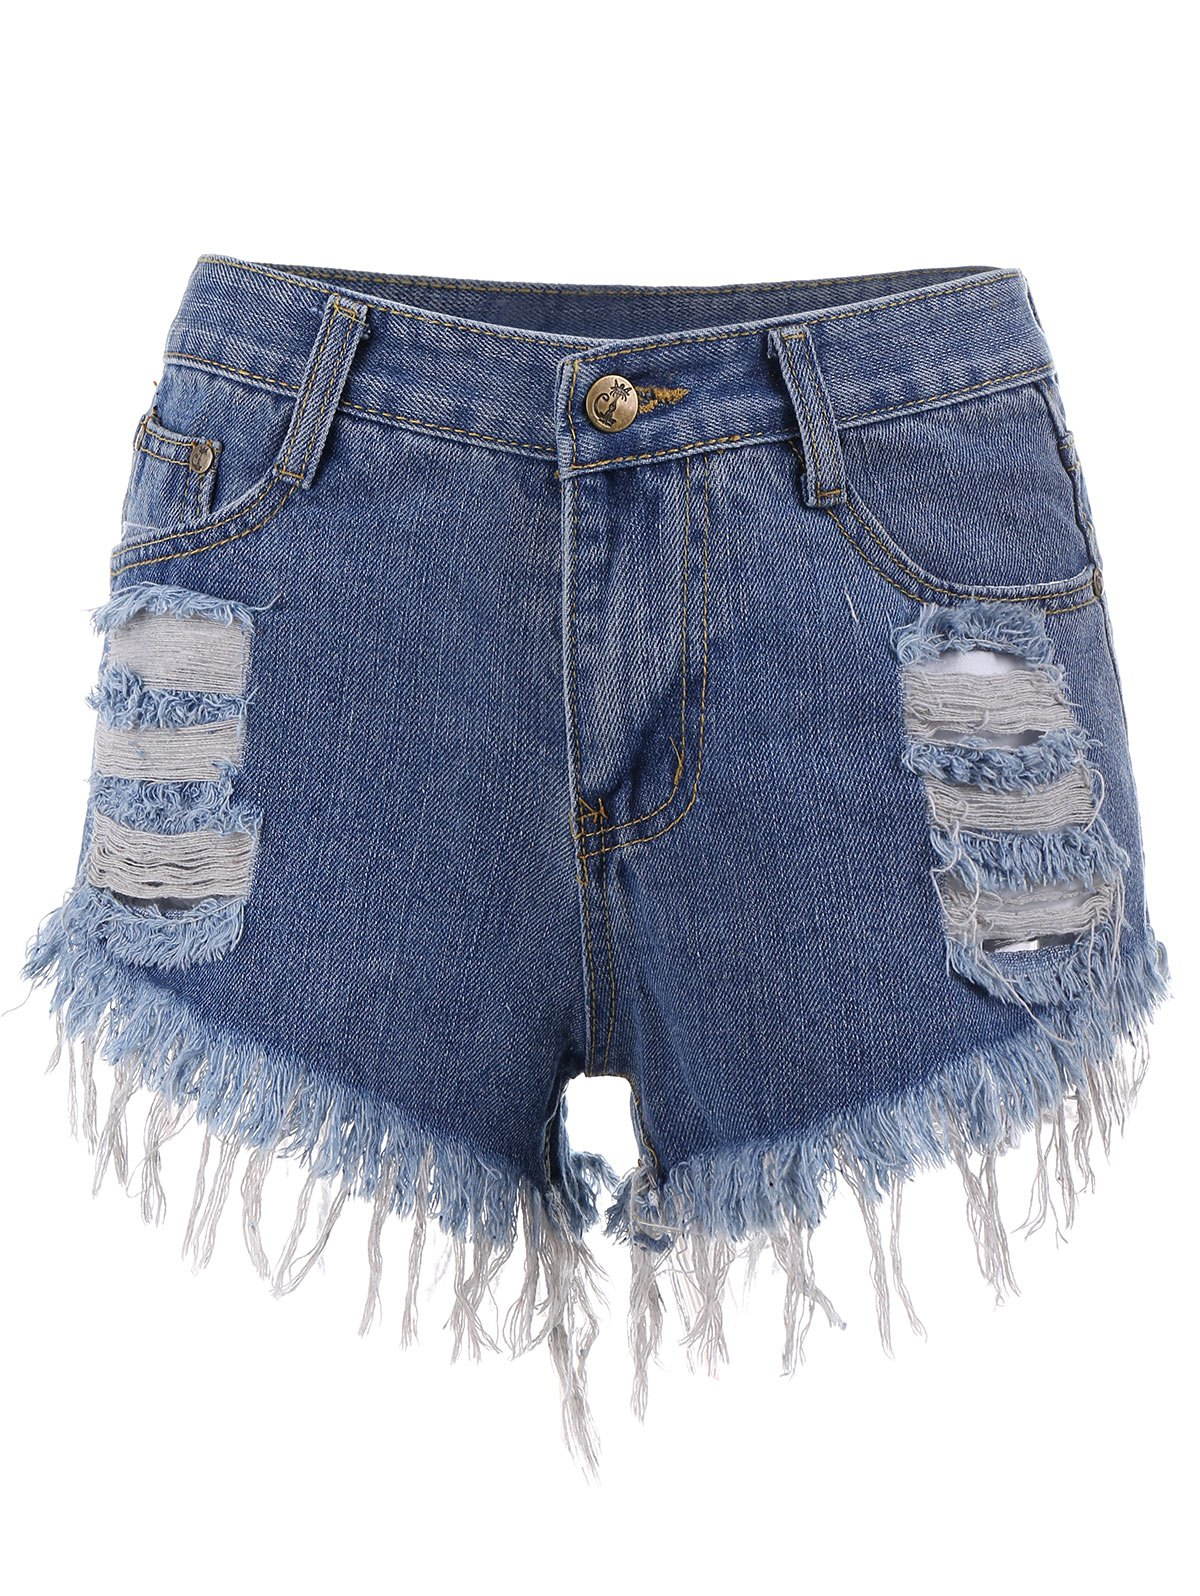 Ripped Mini Cut Off Denim Shorts - BLUE S